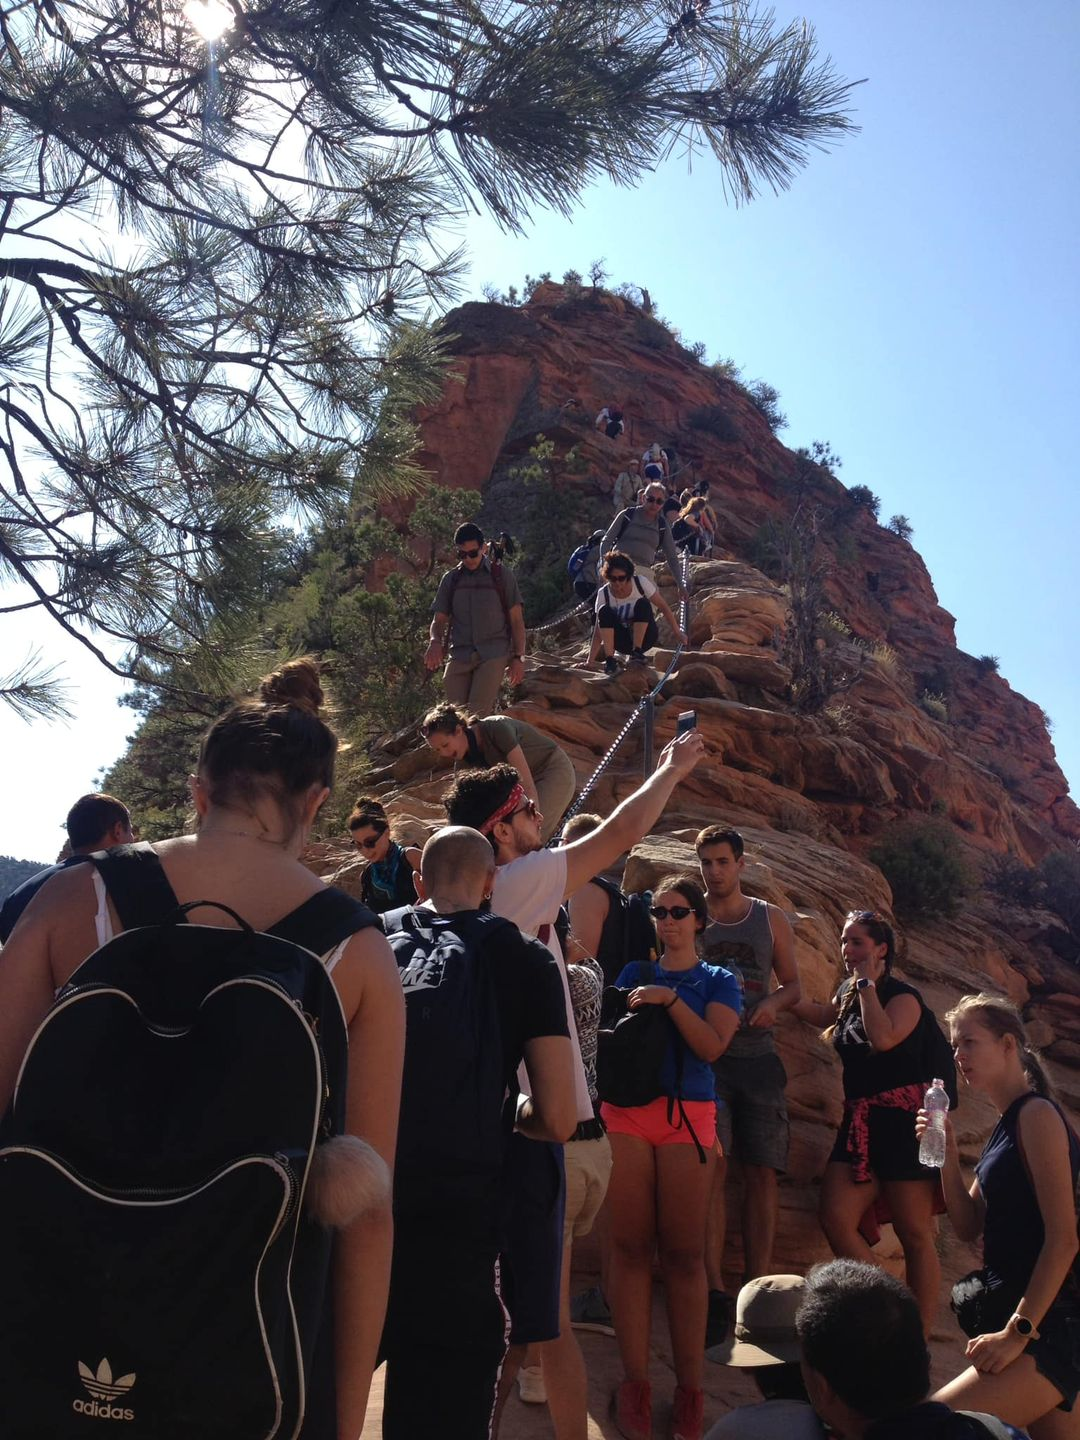 Hikers stand toe-to-heel in a long line up a narrow hike in Zion National Park in Utah. It looks like a line waiting to get into a rock concert. Some people are holding up their phones to take a selfie. They're waiting to go up a steep part of the trail that's the deep brown red rock iconic of the park.